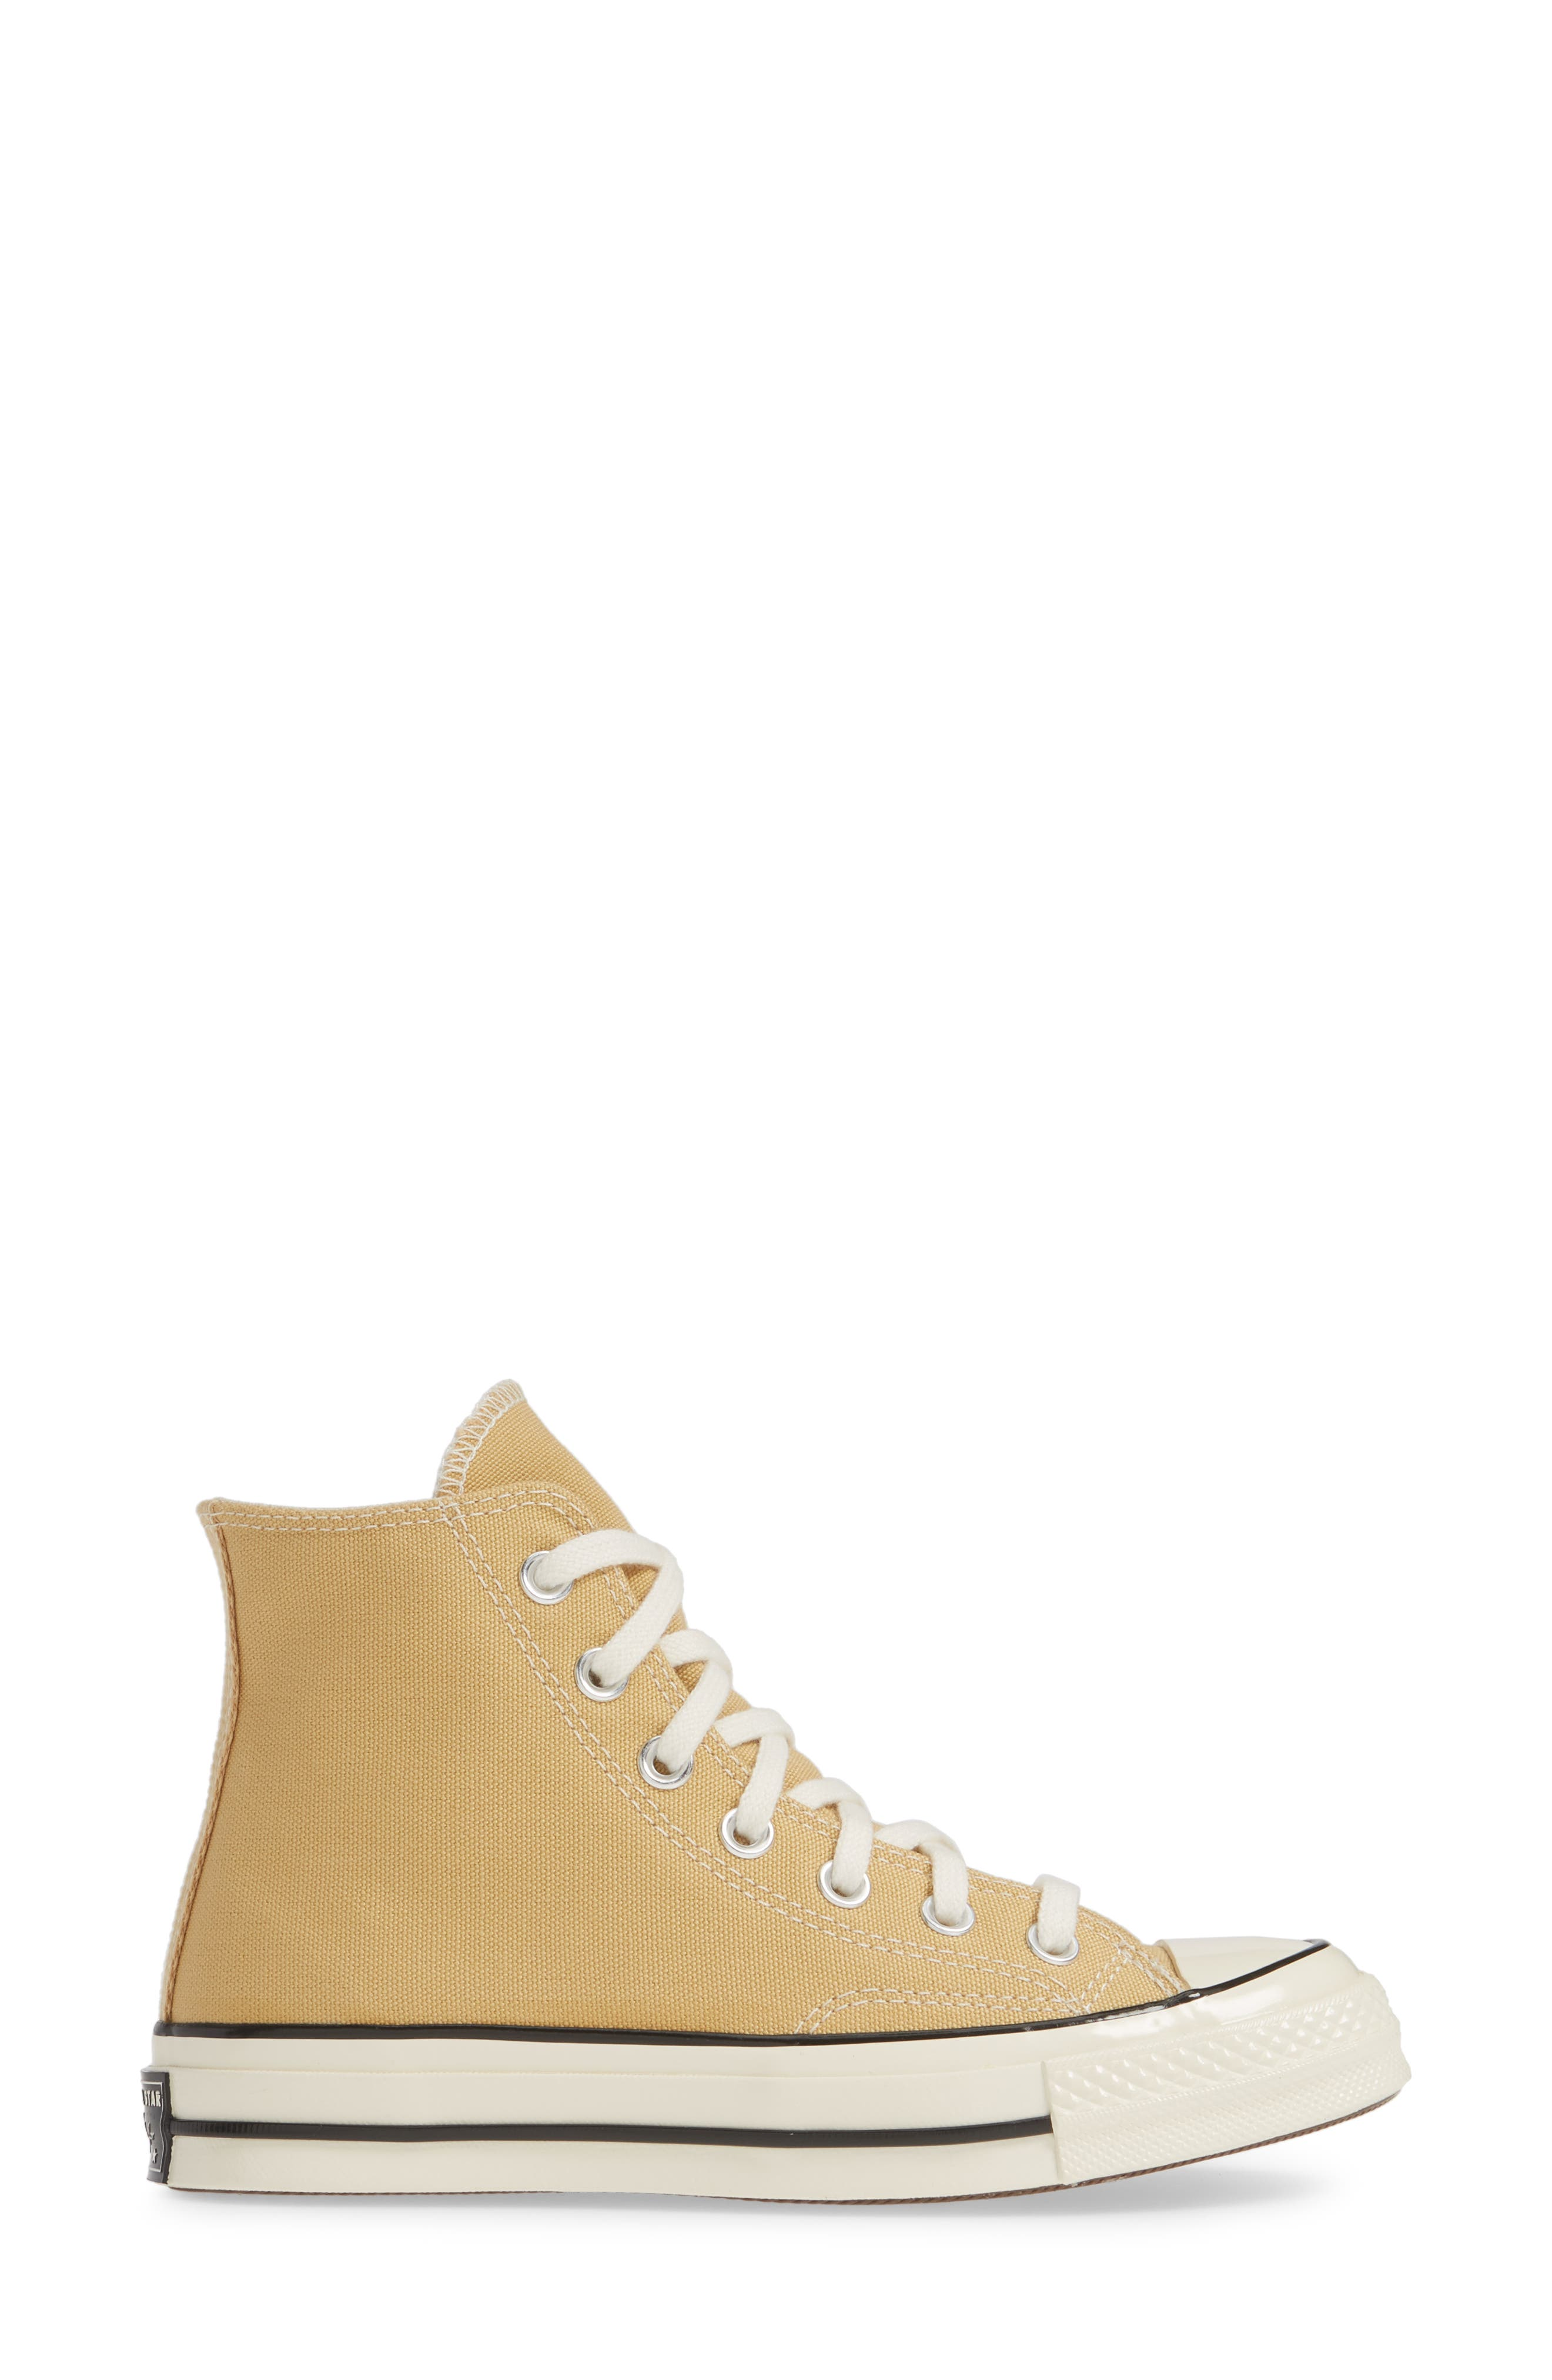 ,                             Chuck Taylor<sup>®</sup> All Star<sup>®</sup> 70 High Top Sneaker,                             Alternate thumbnail 3, color,                             CLUB GOLD/ EGRET/ BLACK